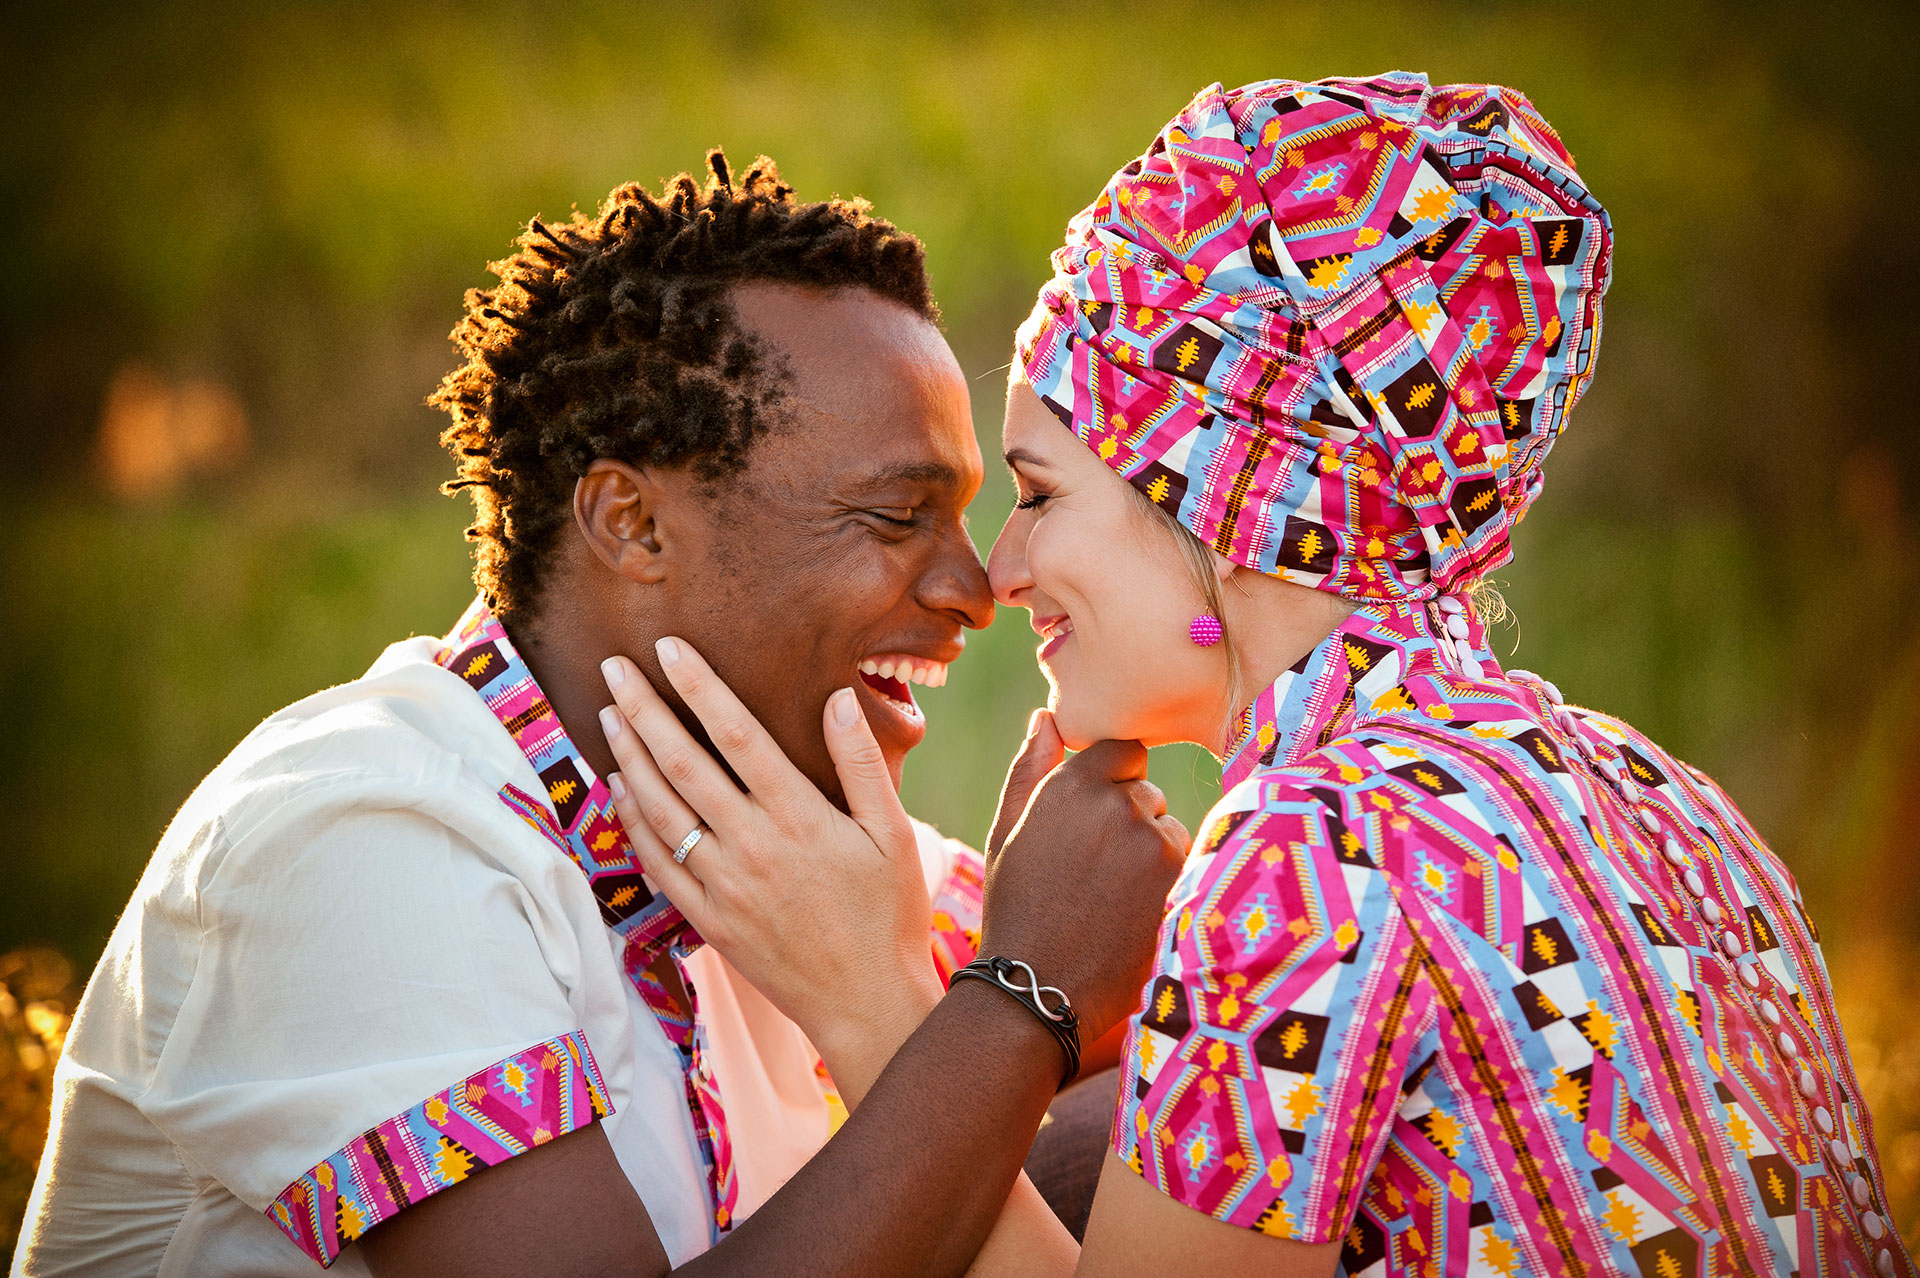 Testimonials-Top-South-African-Wedding-Photographer-Jacki-Bruniquel-001-8408